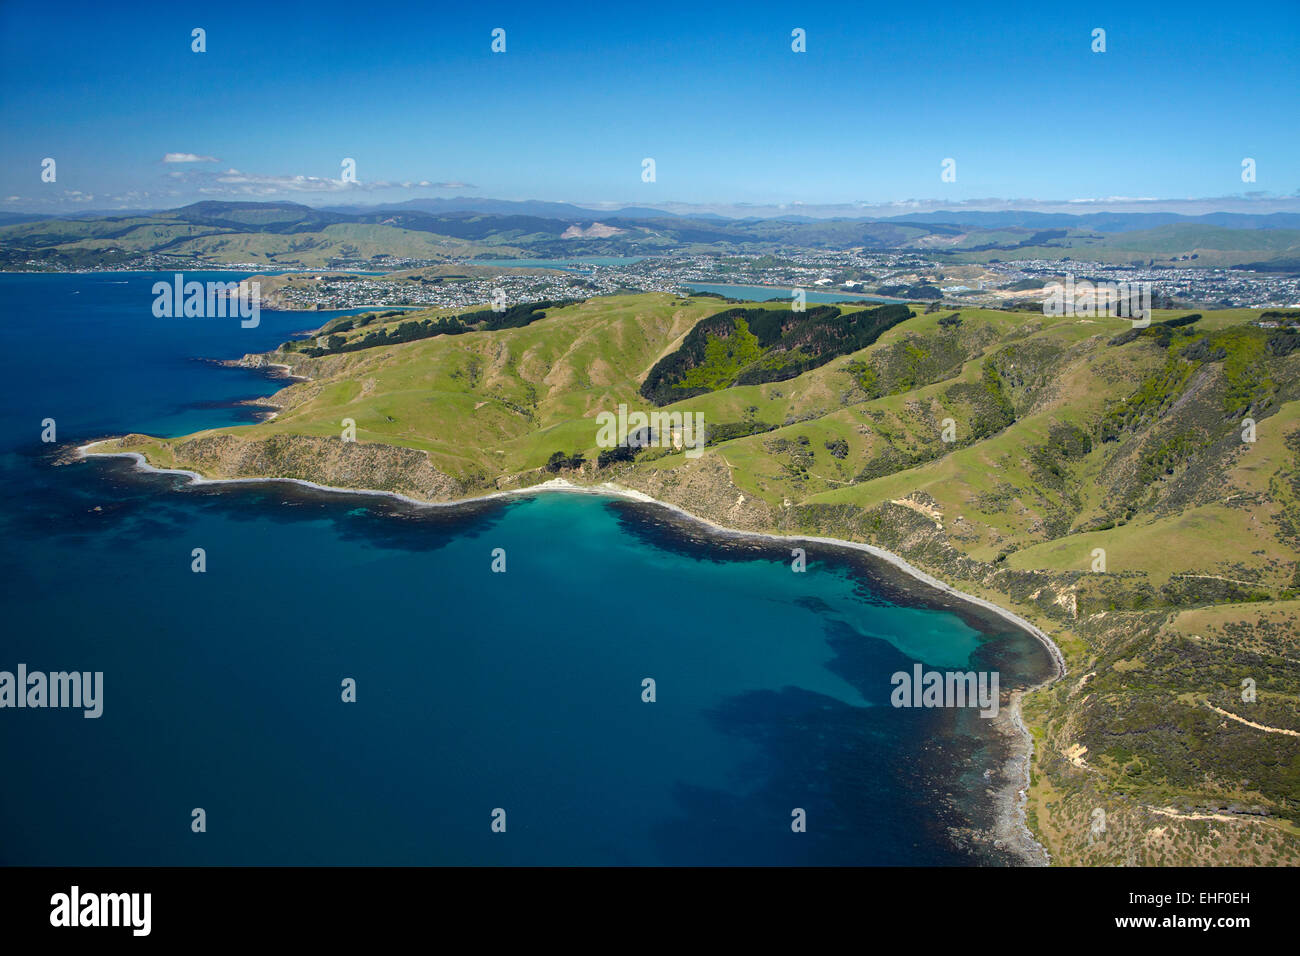 Open Bay, Porirua, Wellington, North Island, New Zealand - aerial - Stock Image